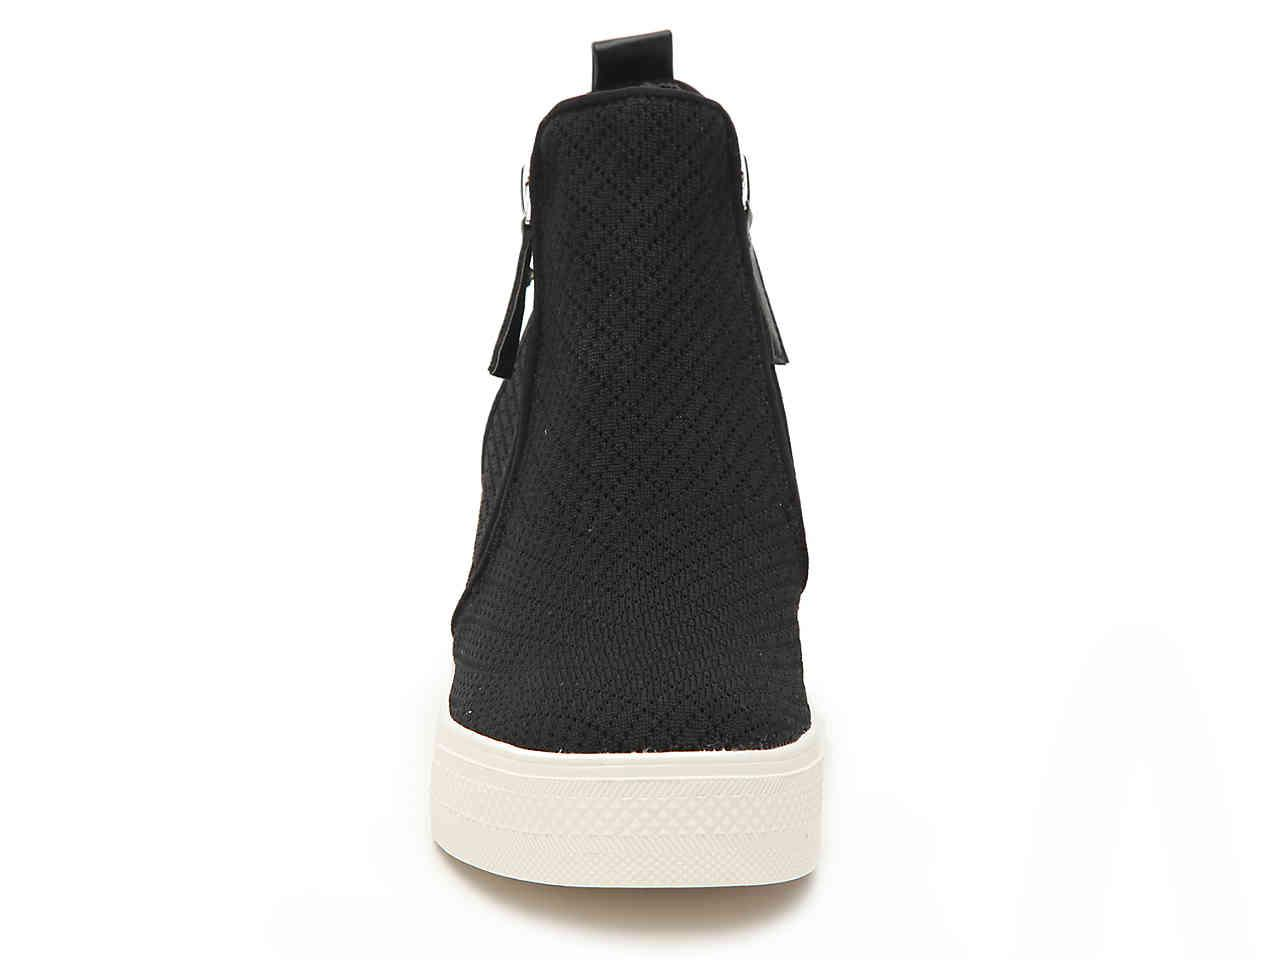 9c7c3fb11f2 Steve Madden - Black Loxley Wedge High-top Sneaker - Lyst. View fullscreen